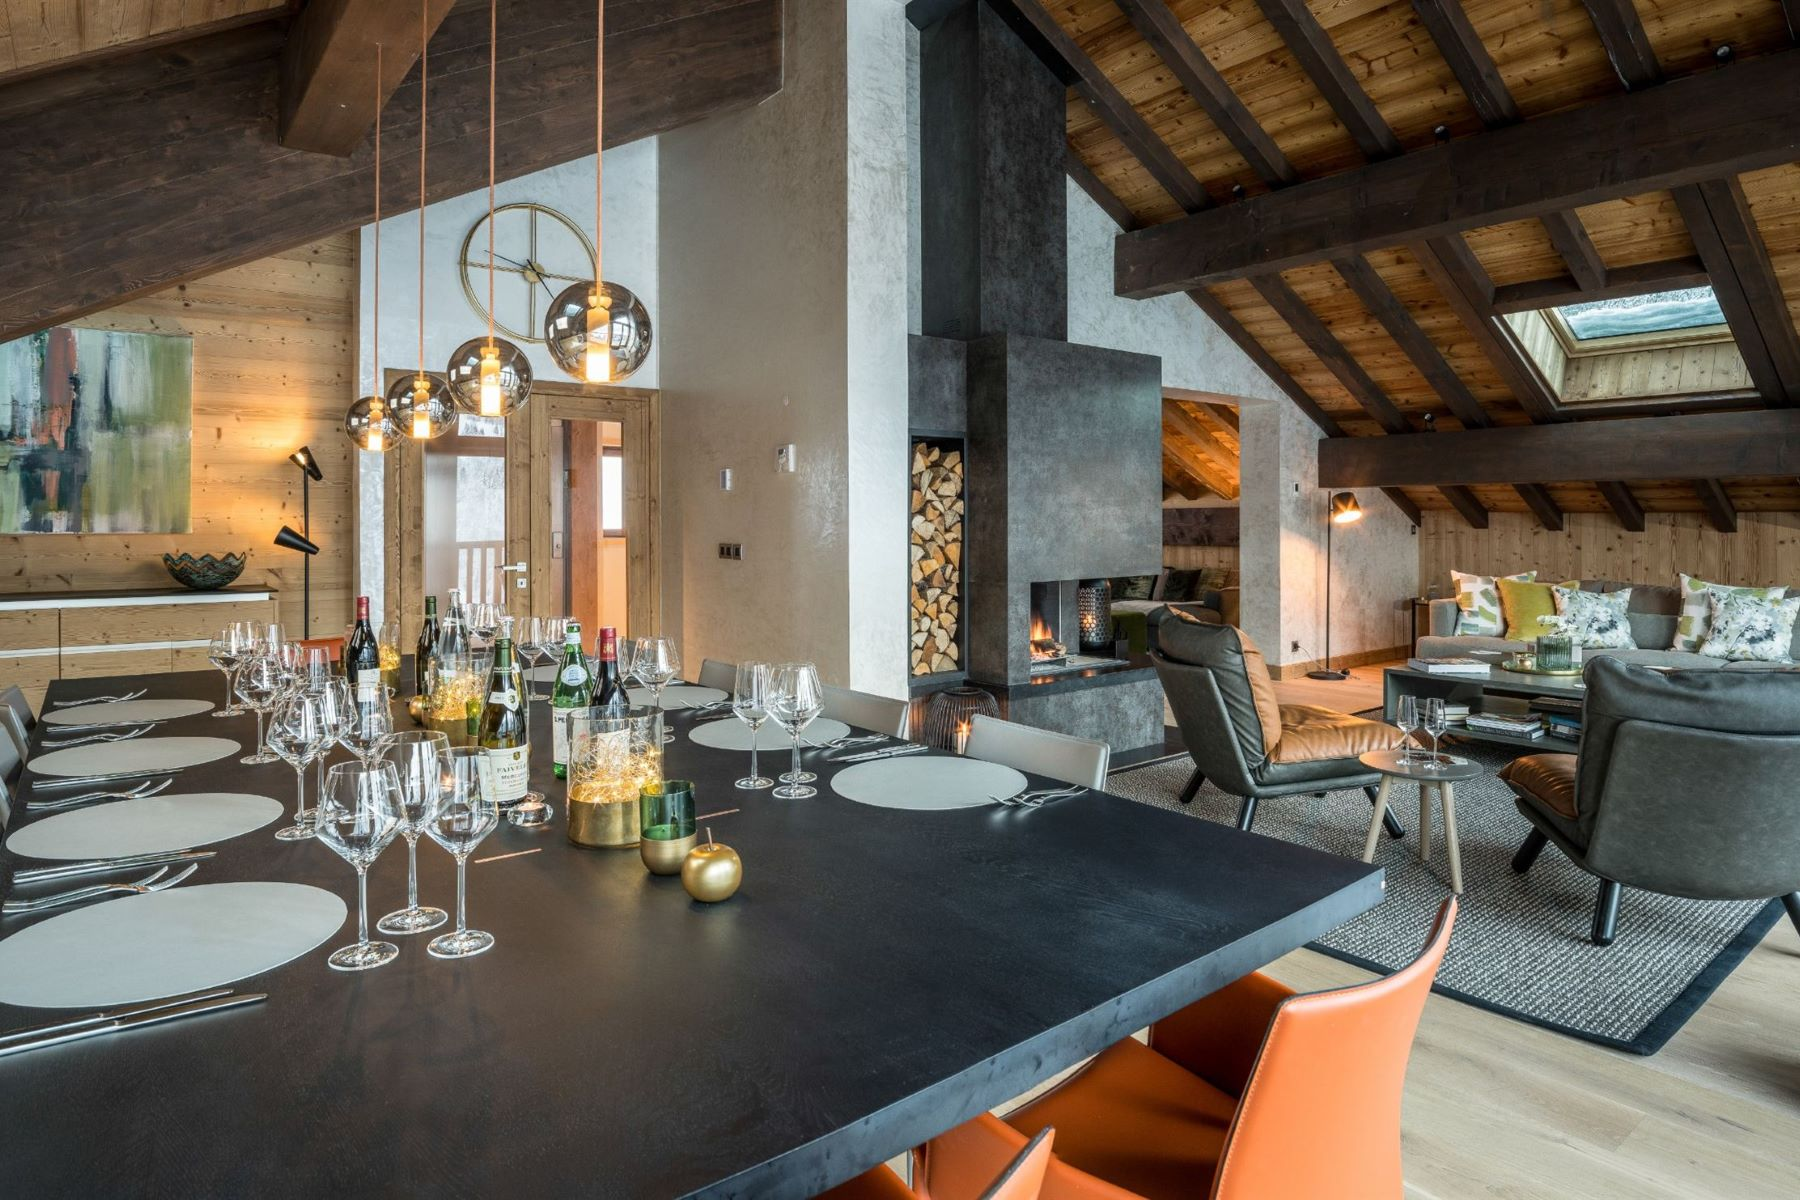 Additional photo for property listing at Luxury ski in chalet - catered  Meribel, Rhone-Alpes 73550 프랑스